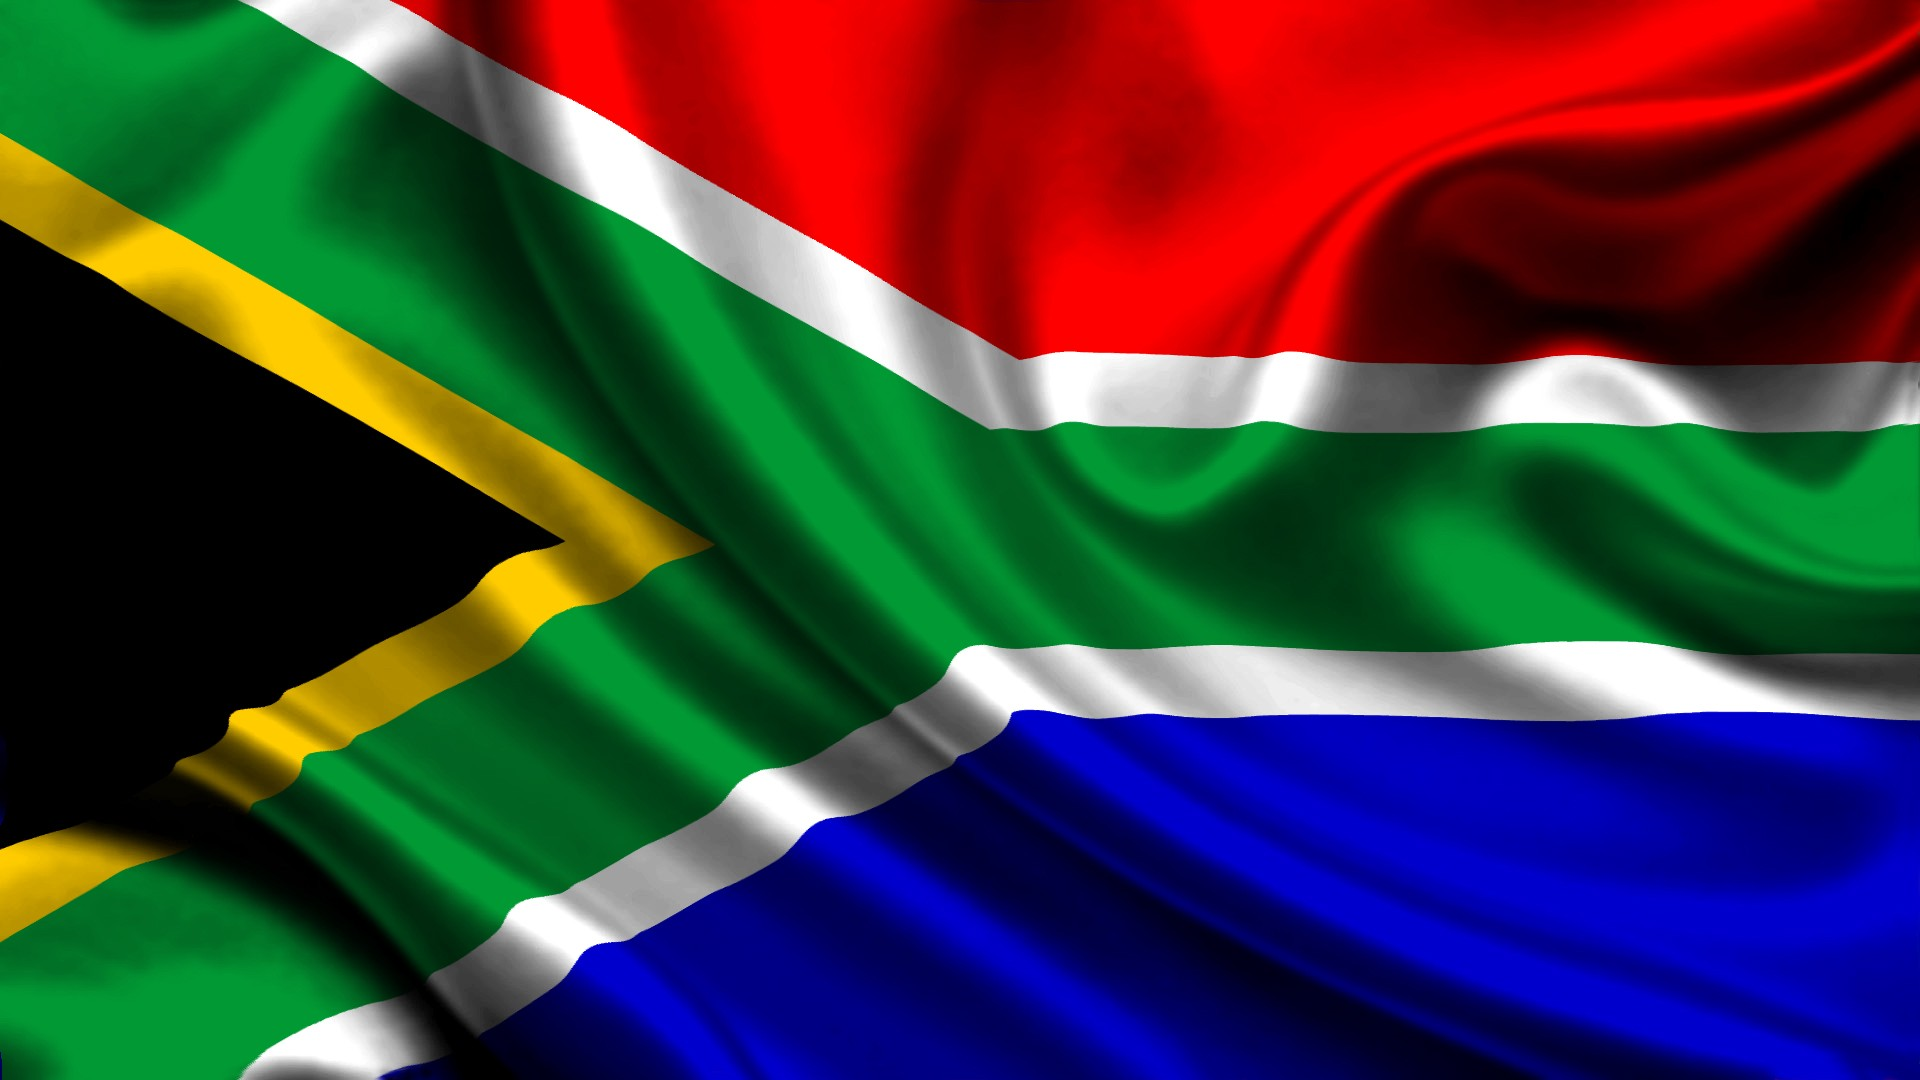 HQ Flag Of South Africa Wallpapers   File 163.48Kb